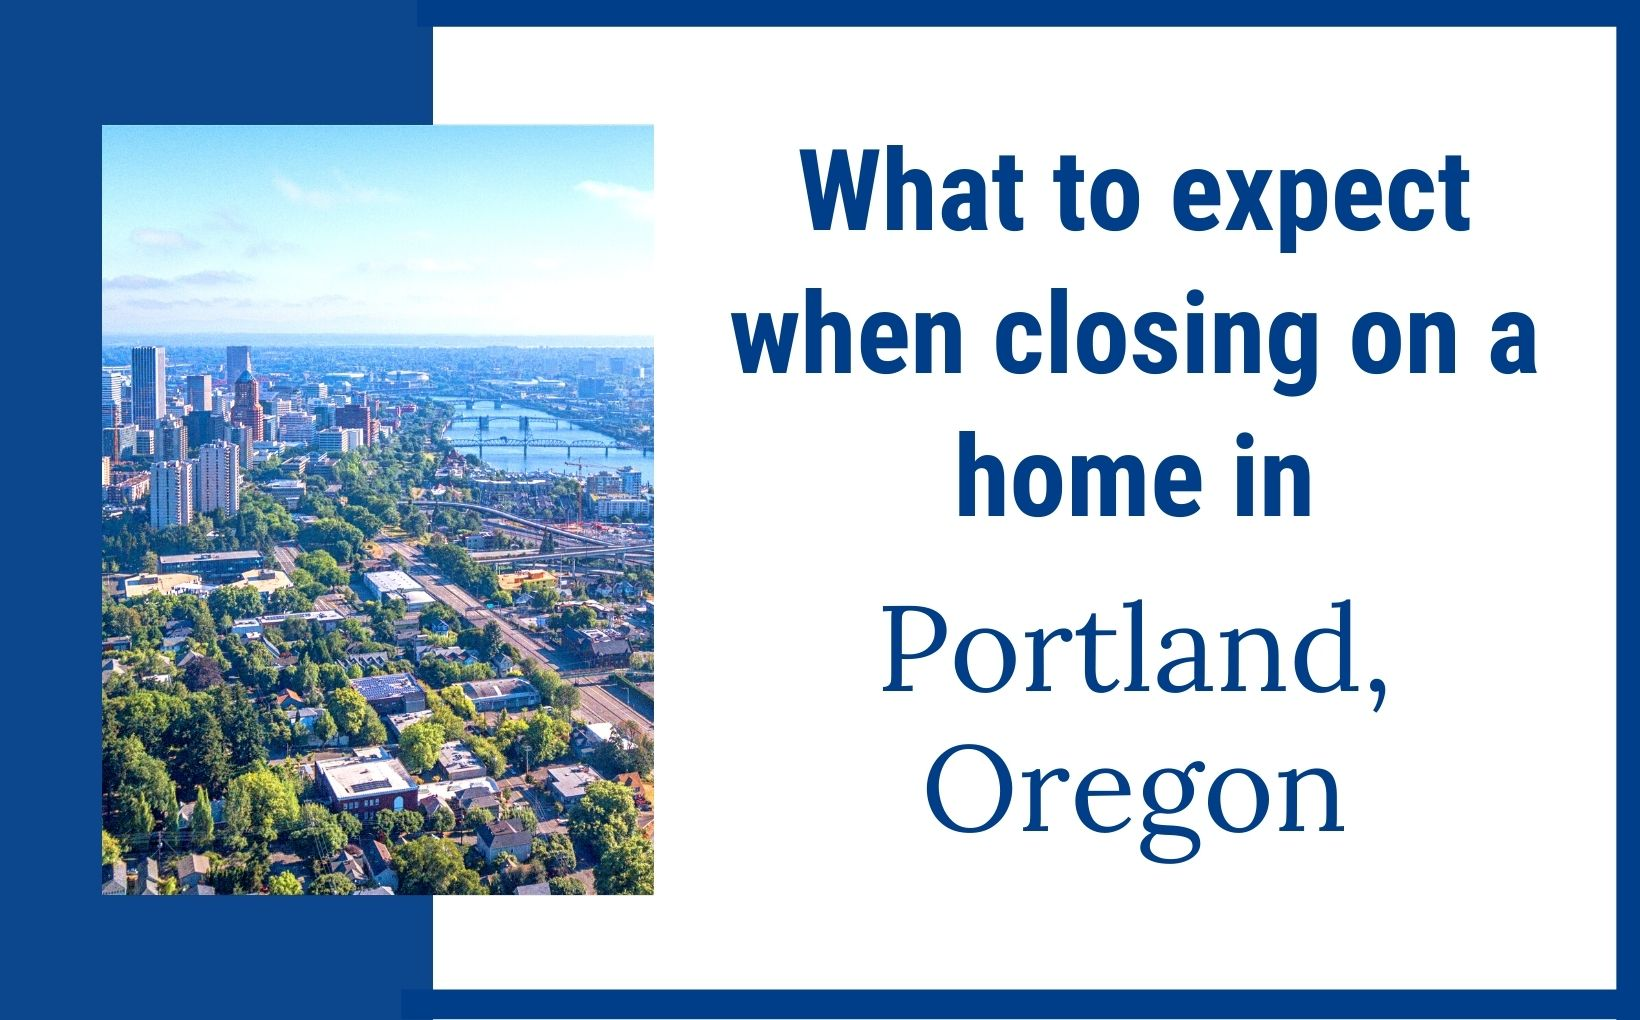 What to expect when closing on a home in Portland Oregon feature image